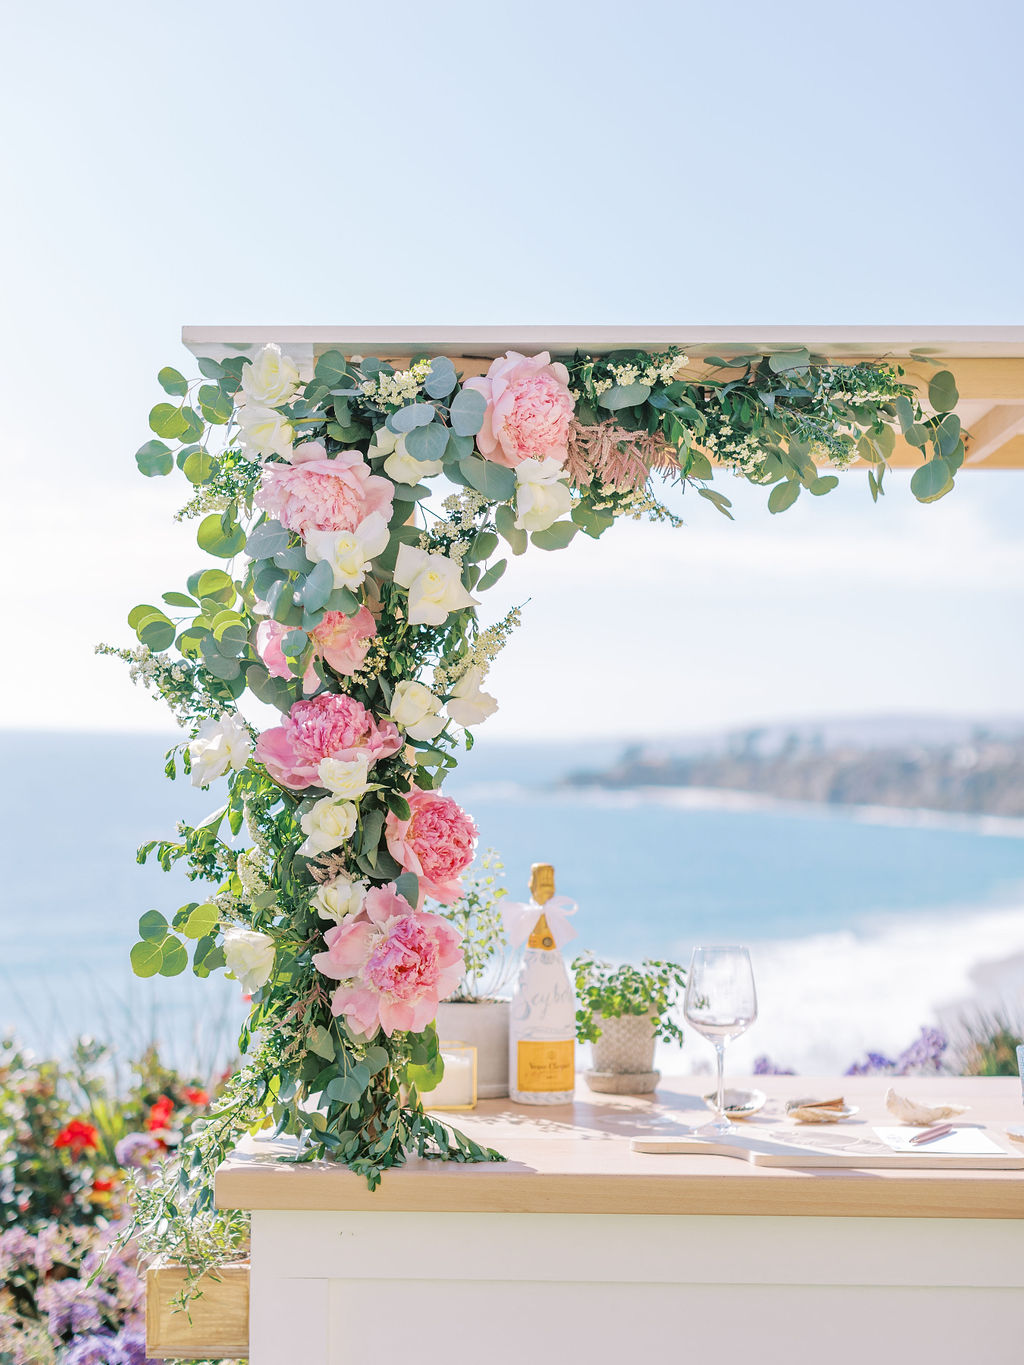 Beautiful floral arrangement for marriage proposal